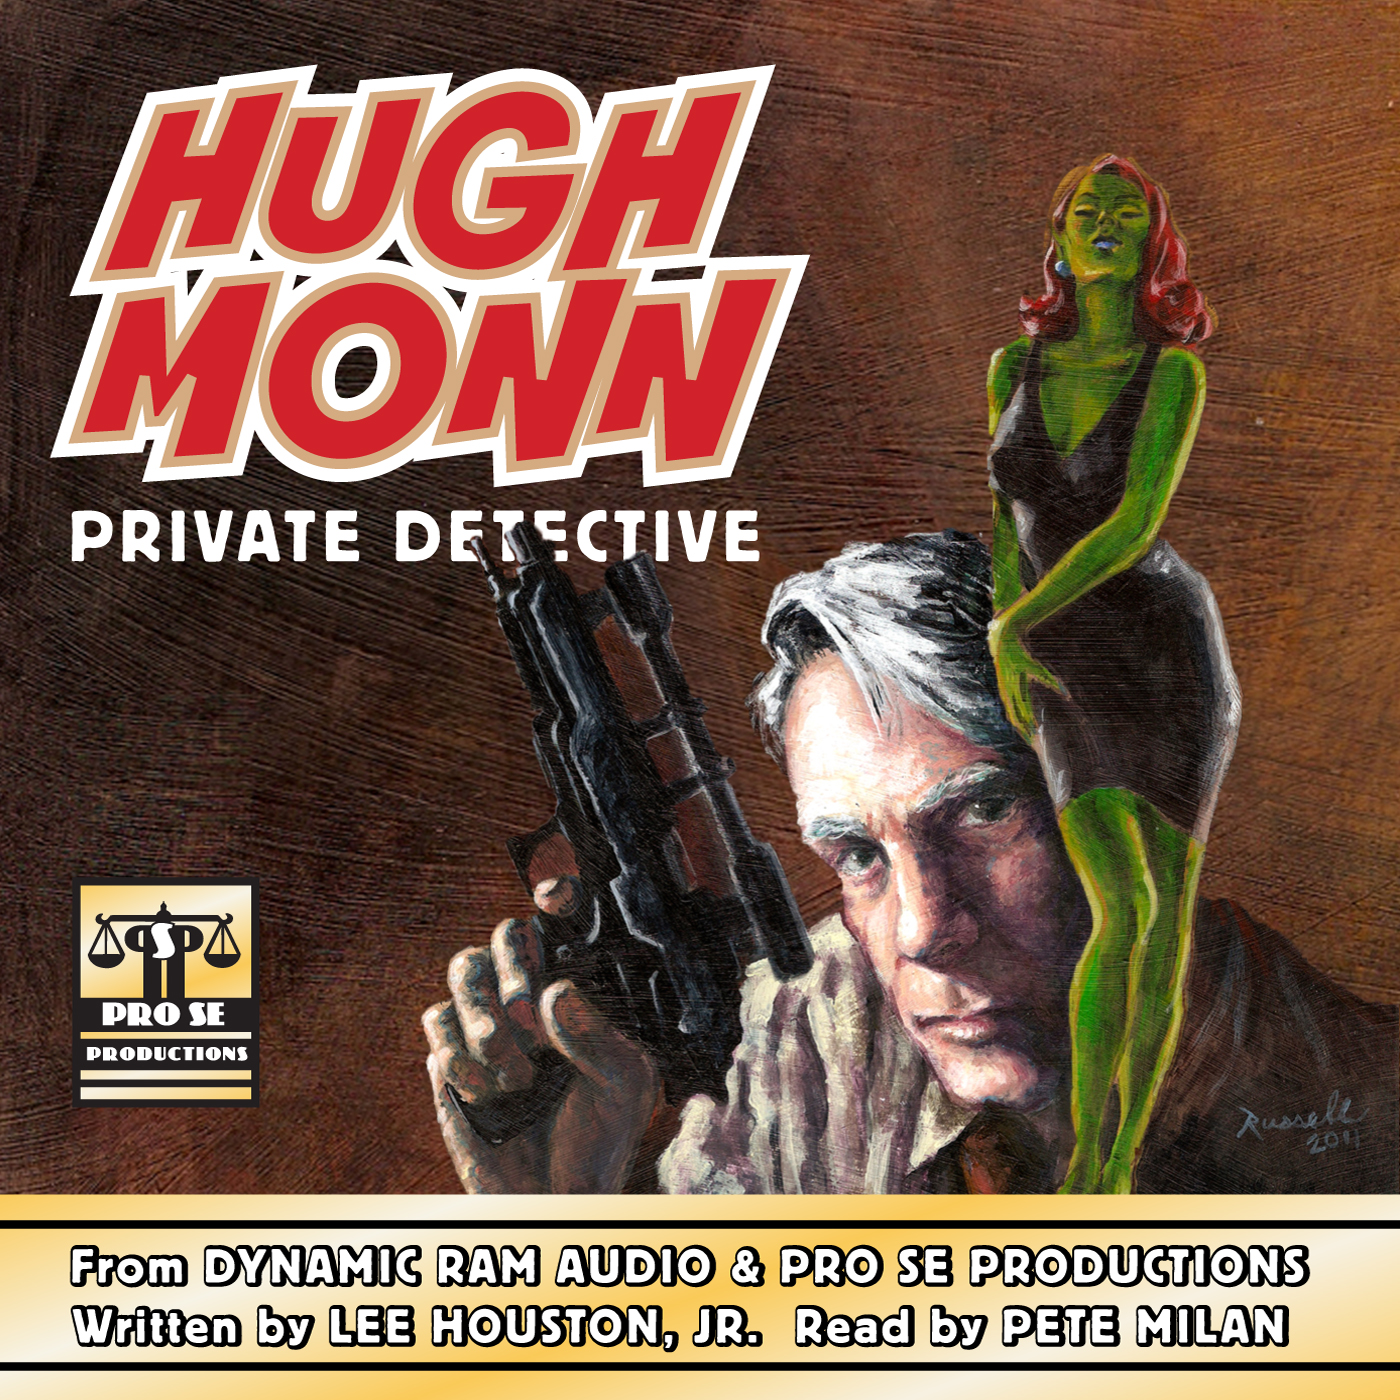 Hugh Monn Audio.jpg